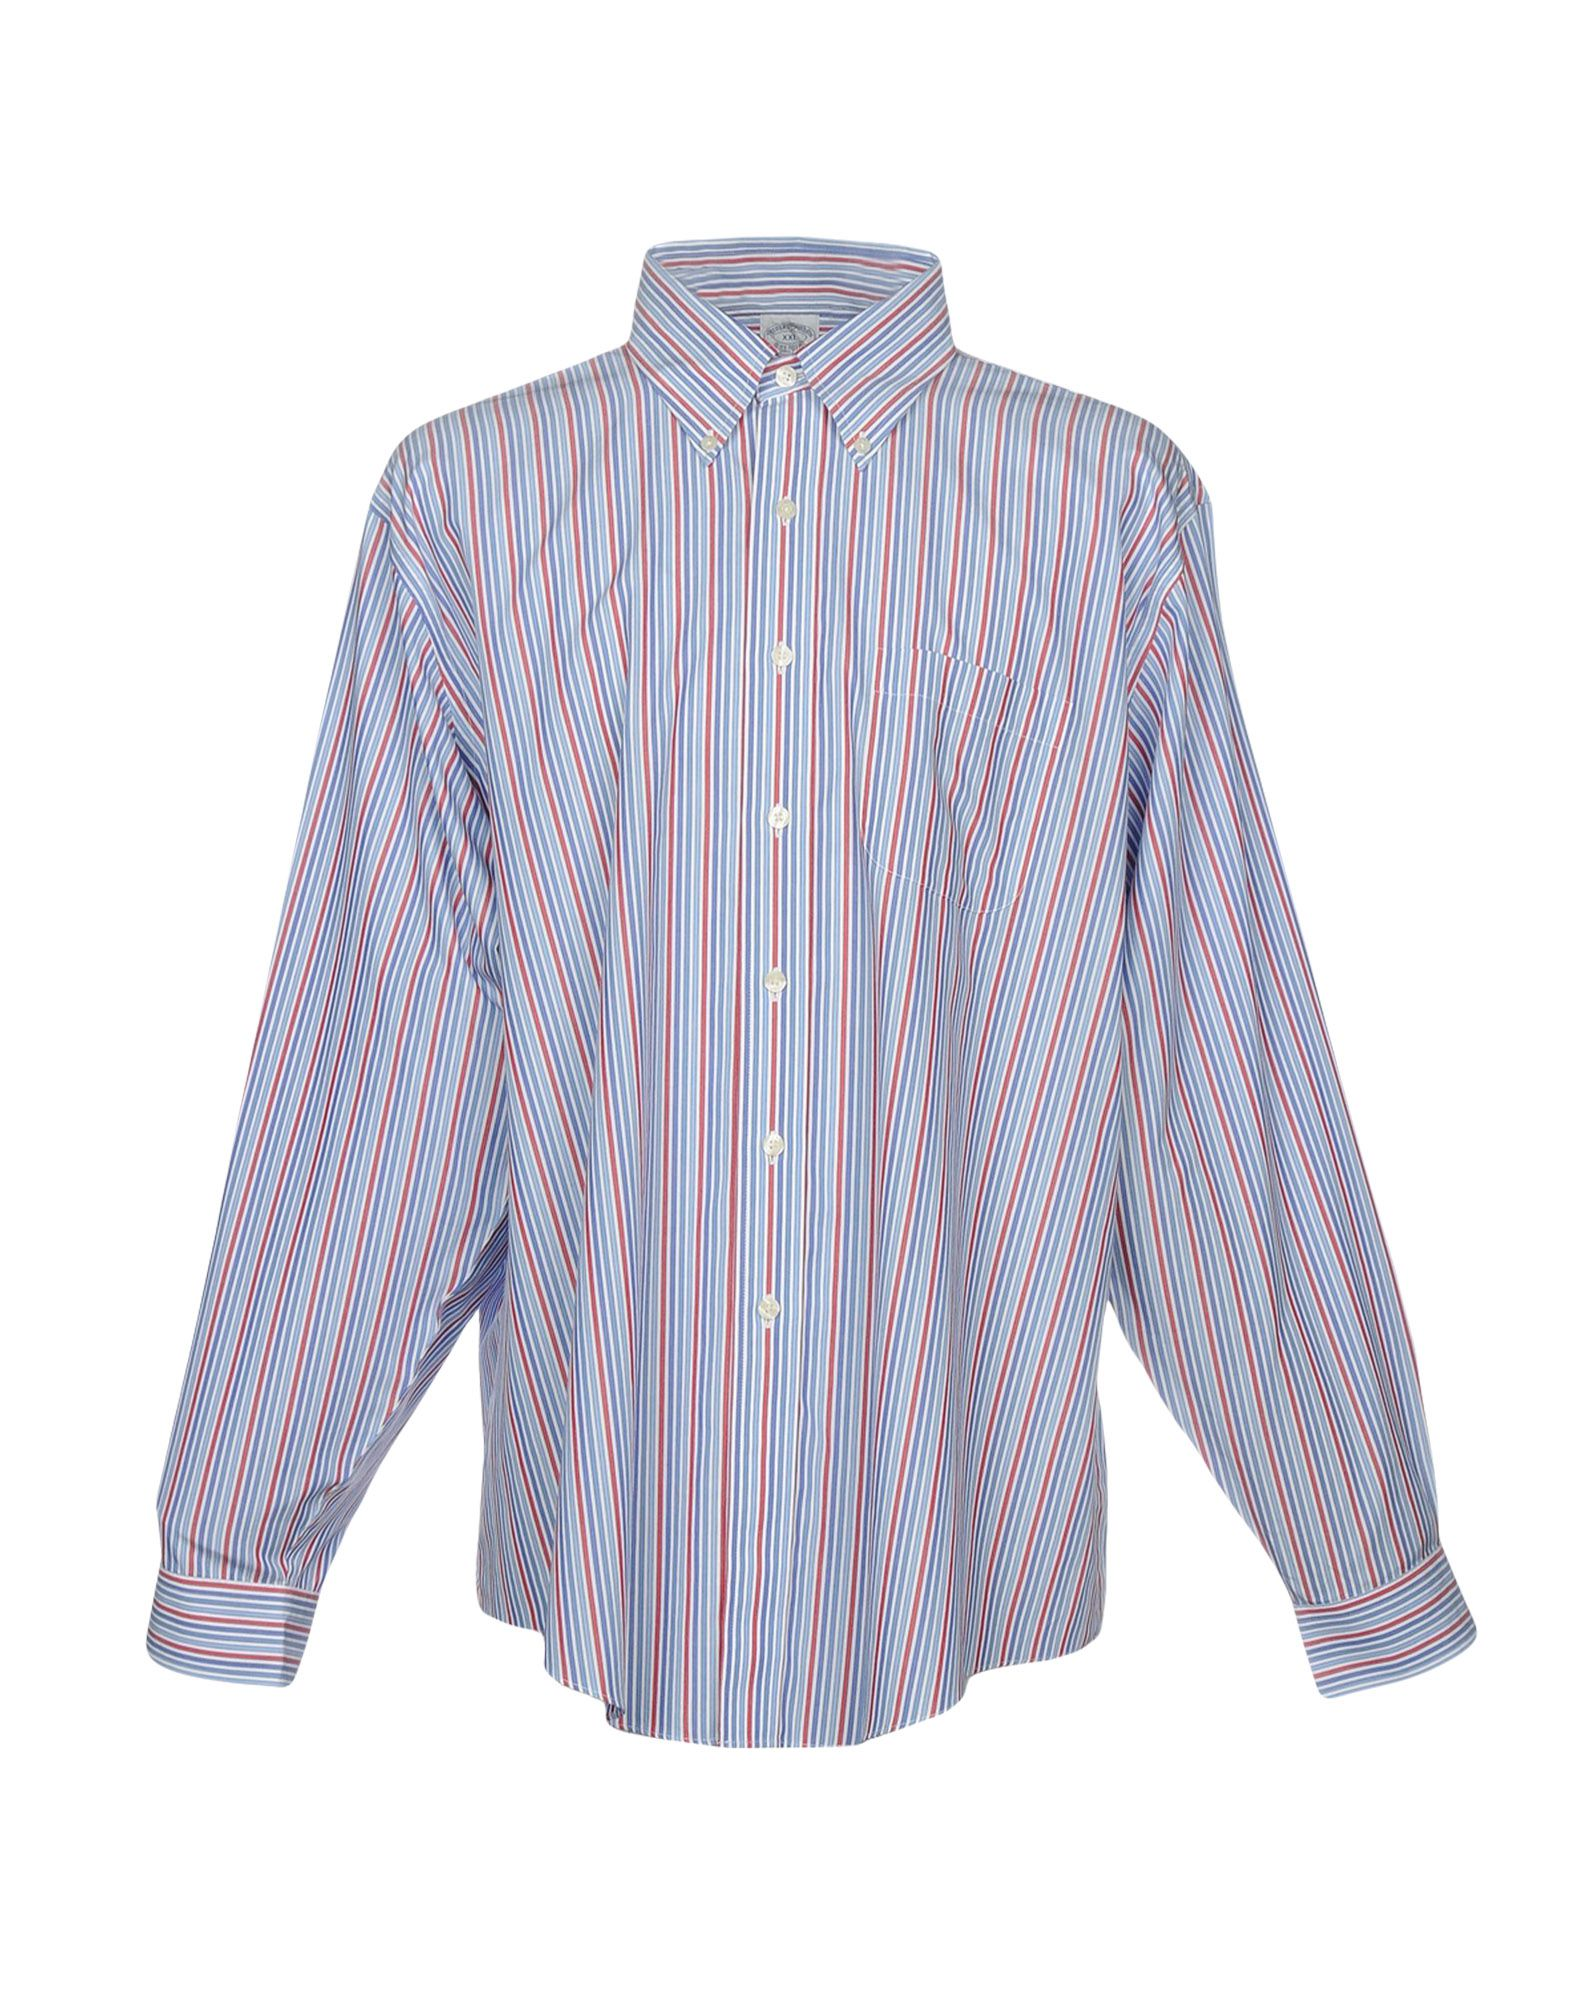 BROOKS BROTHERS Pубашка lost temple brothers 2018 05 20t20 00